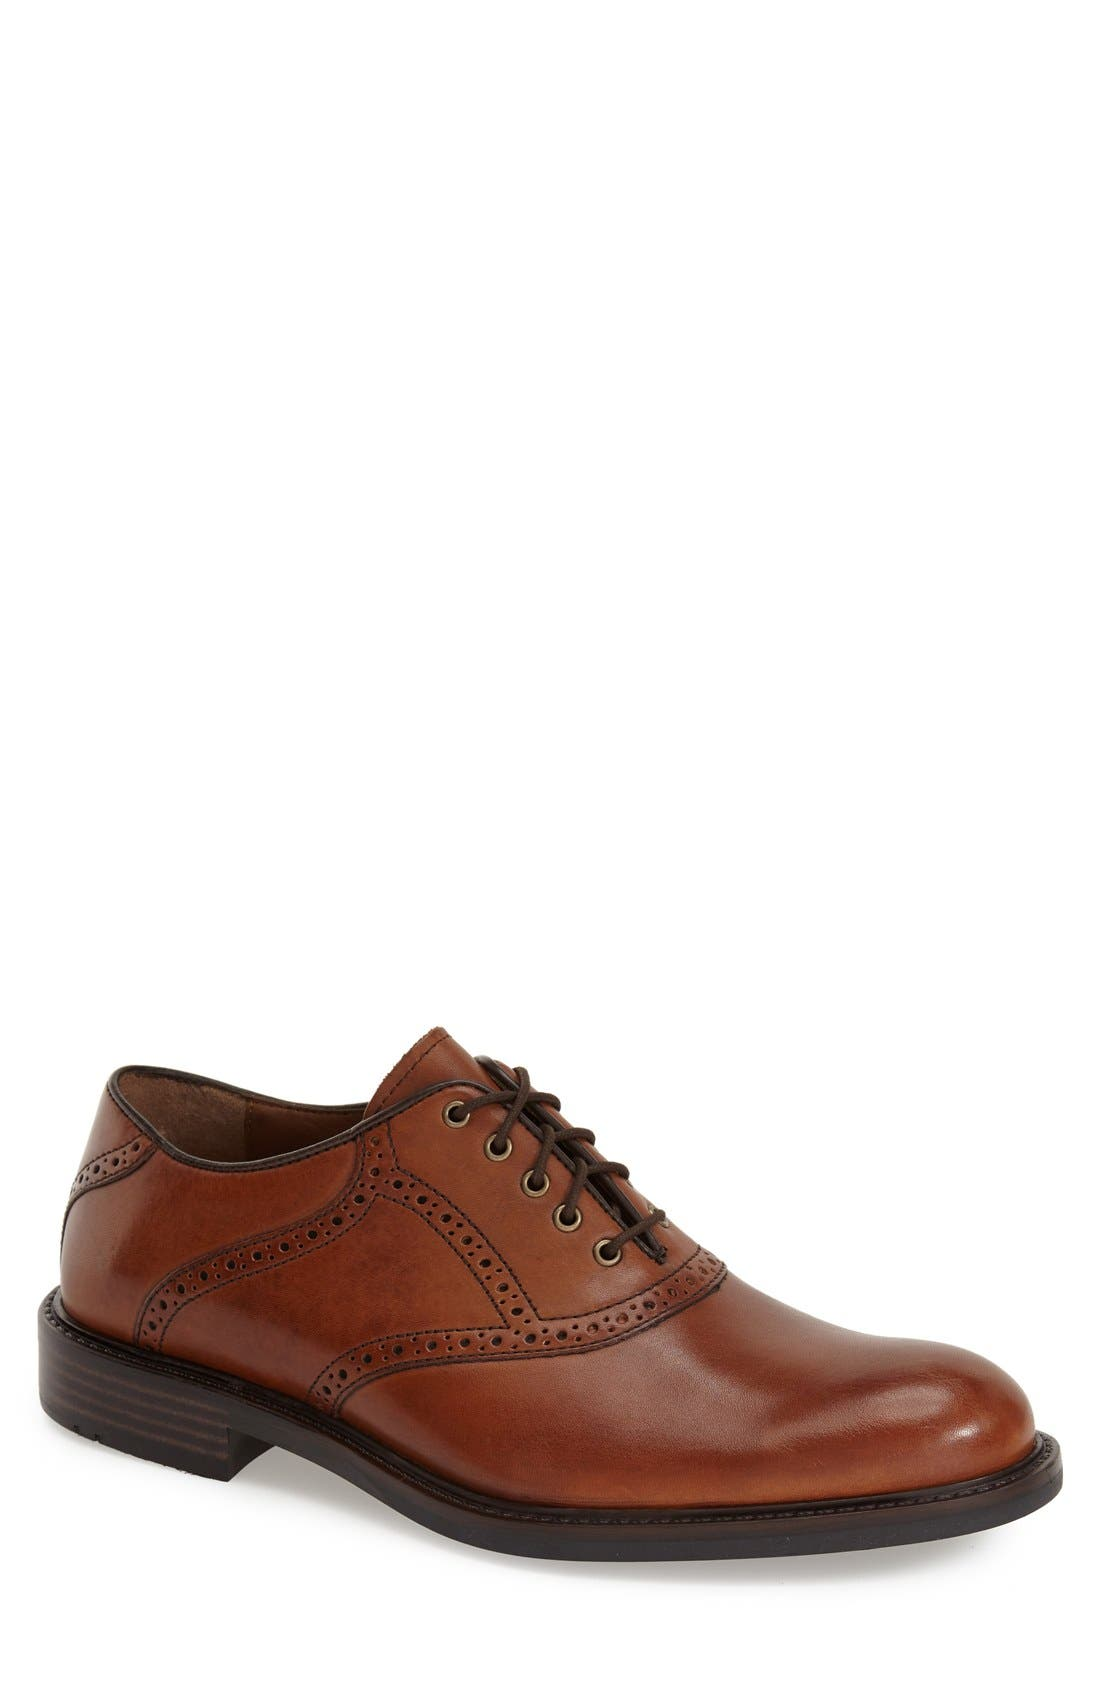 Johnston & Murphy 'Tabor' Saddle Shoe (Men)